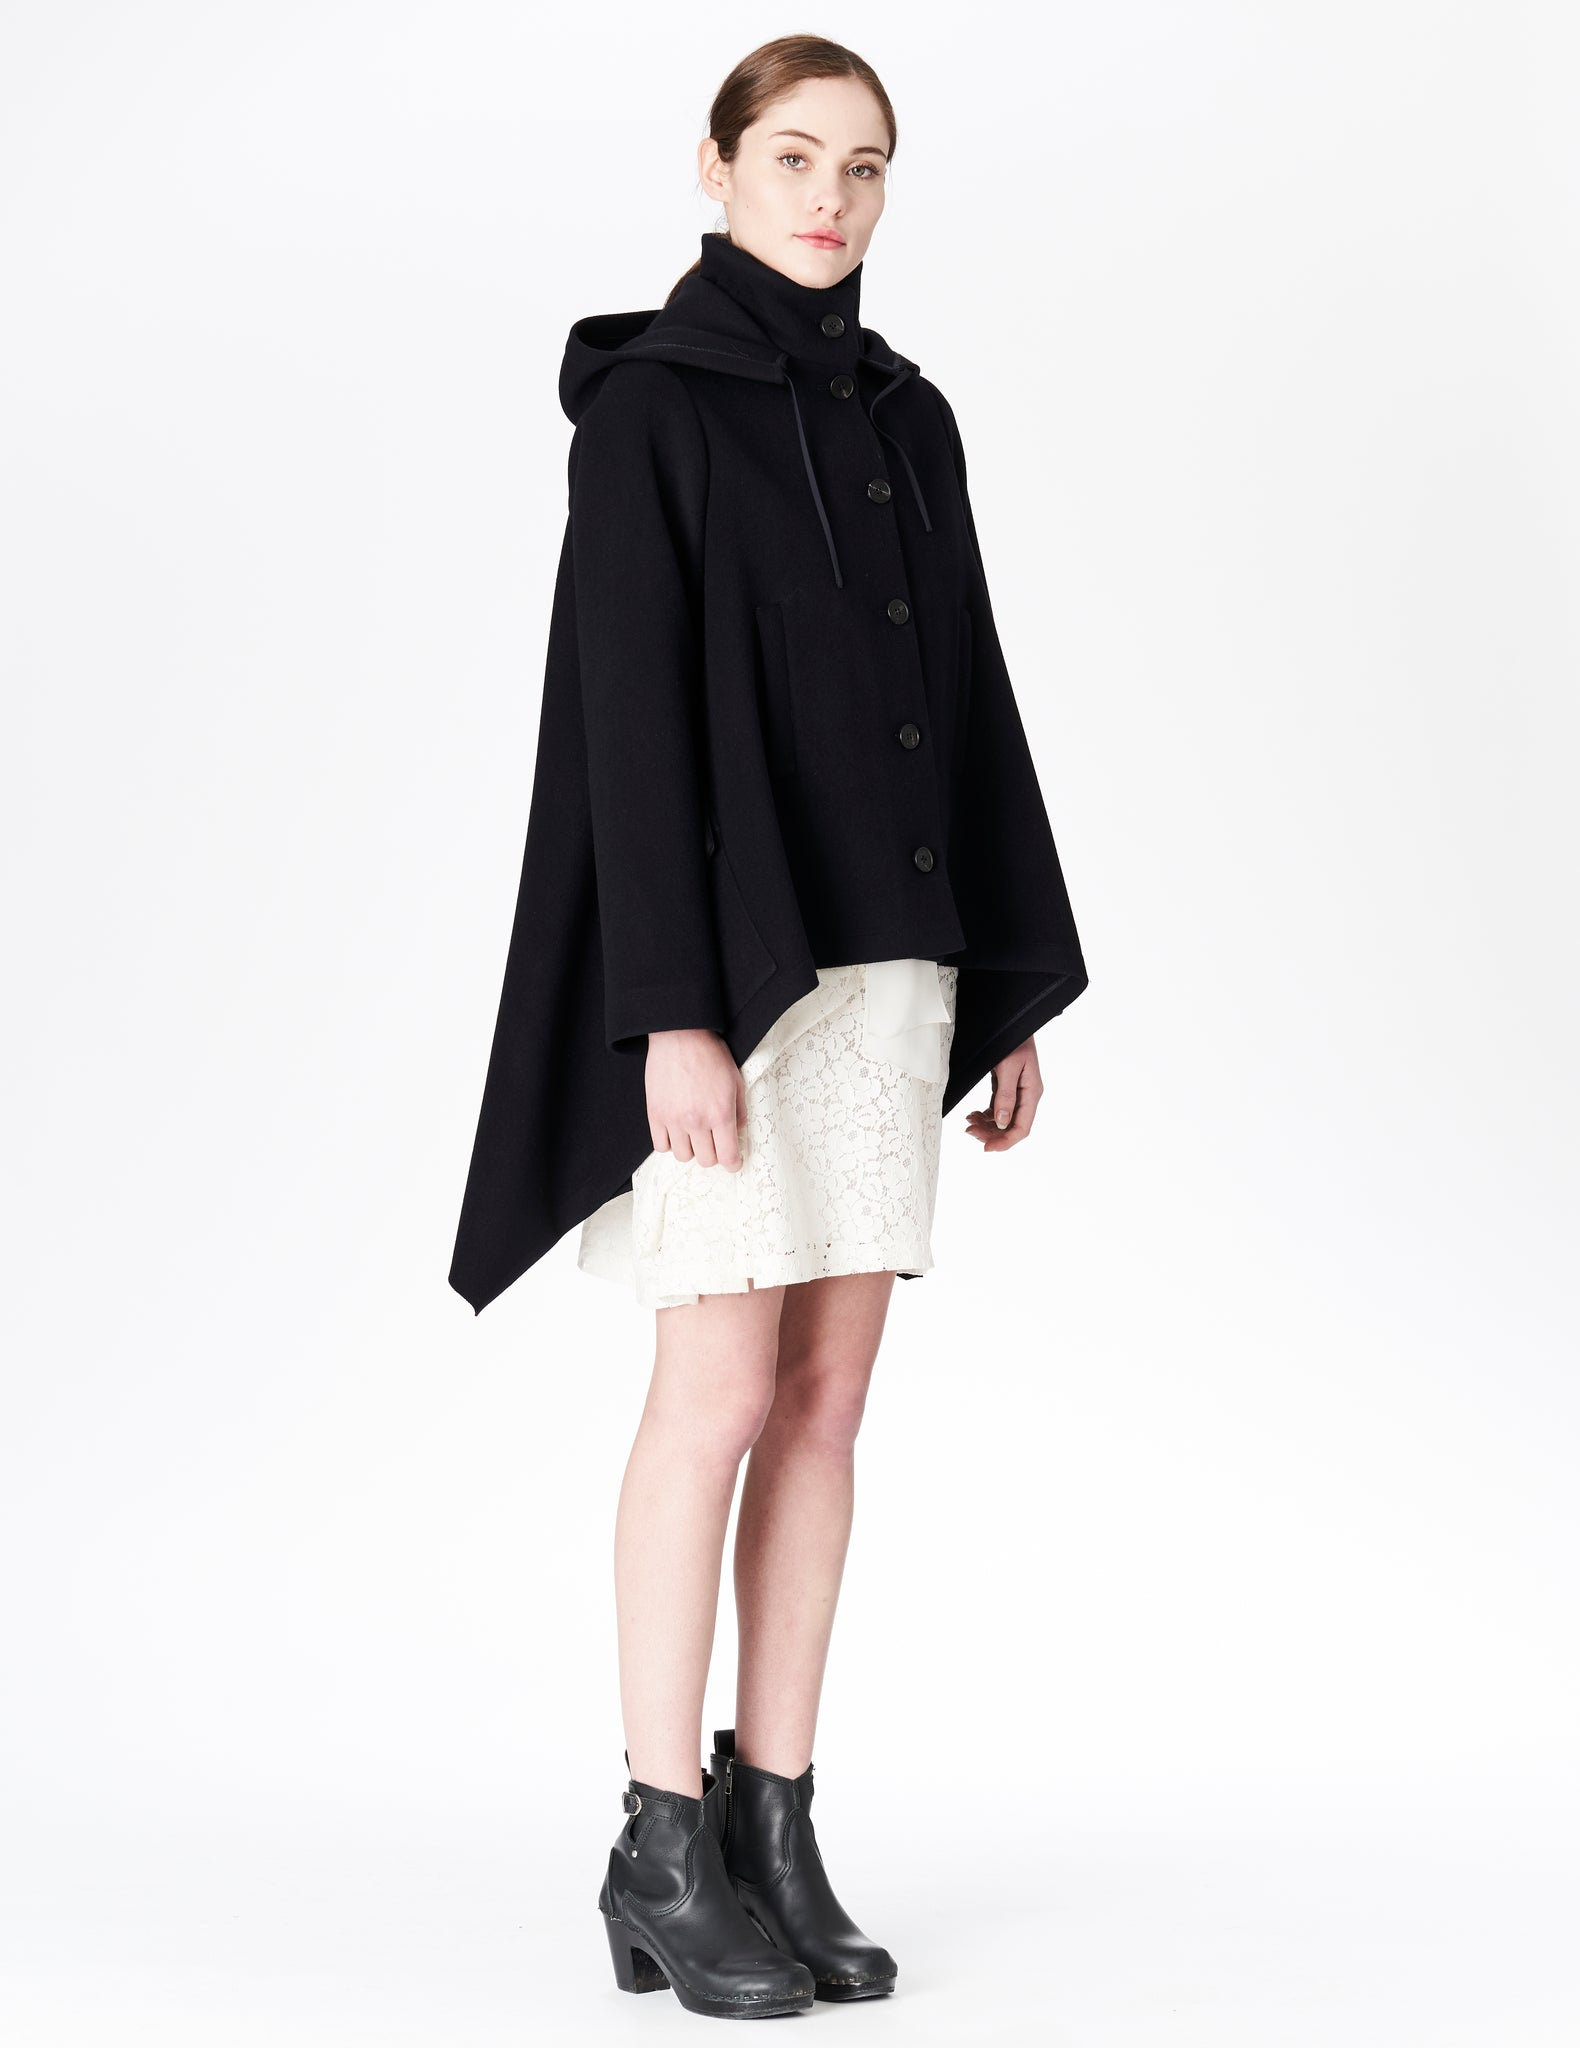 morgane le fay asymmetrical wool coat with hood and pockets. made in new york.